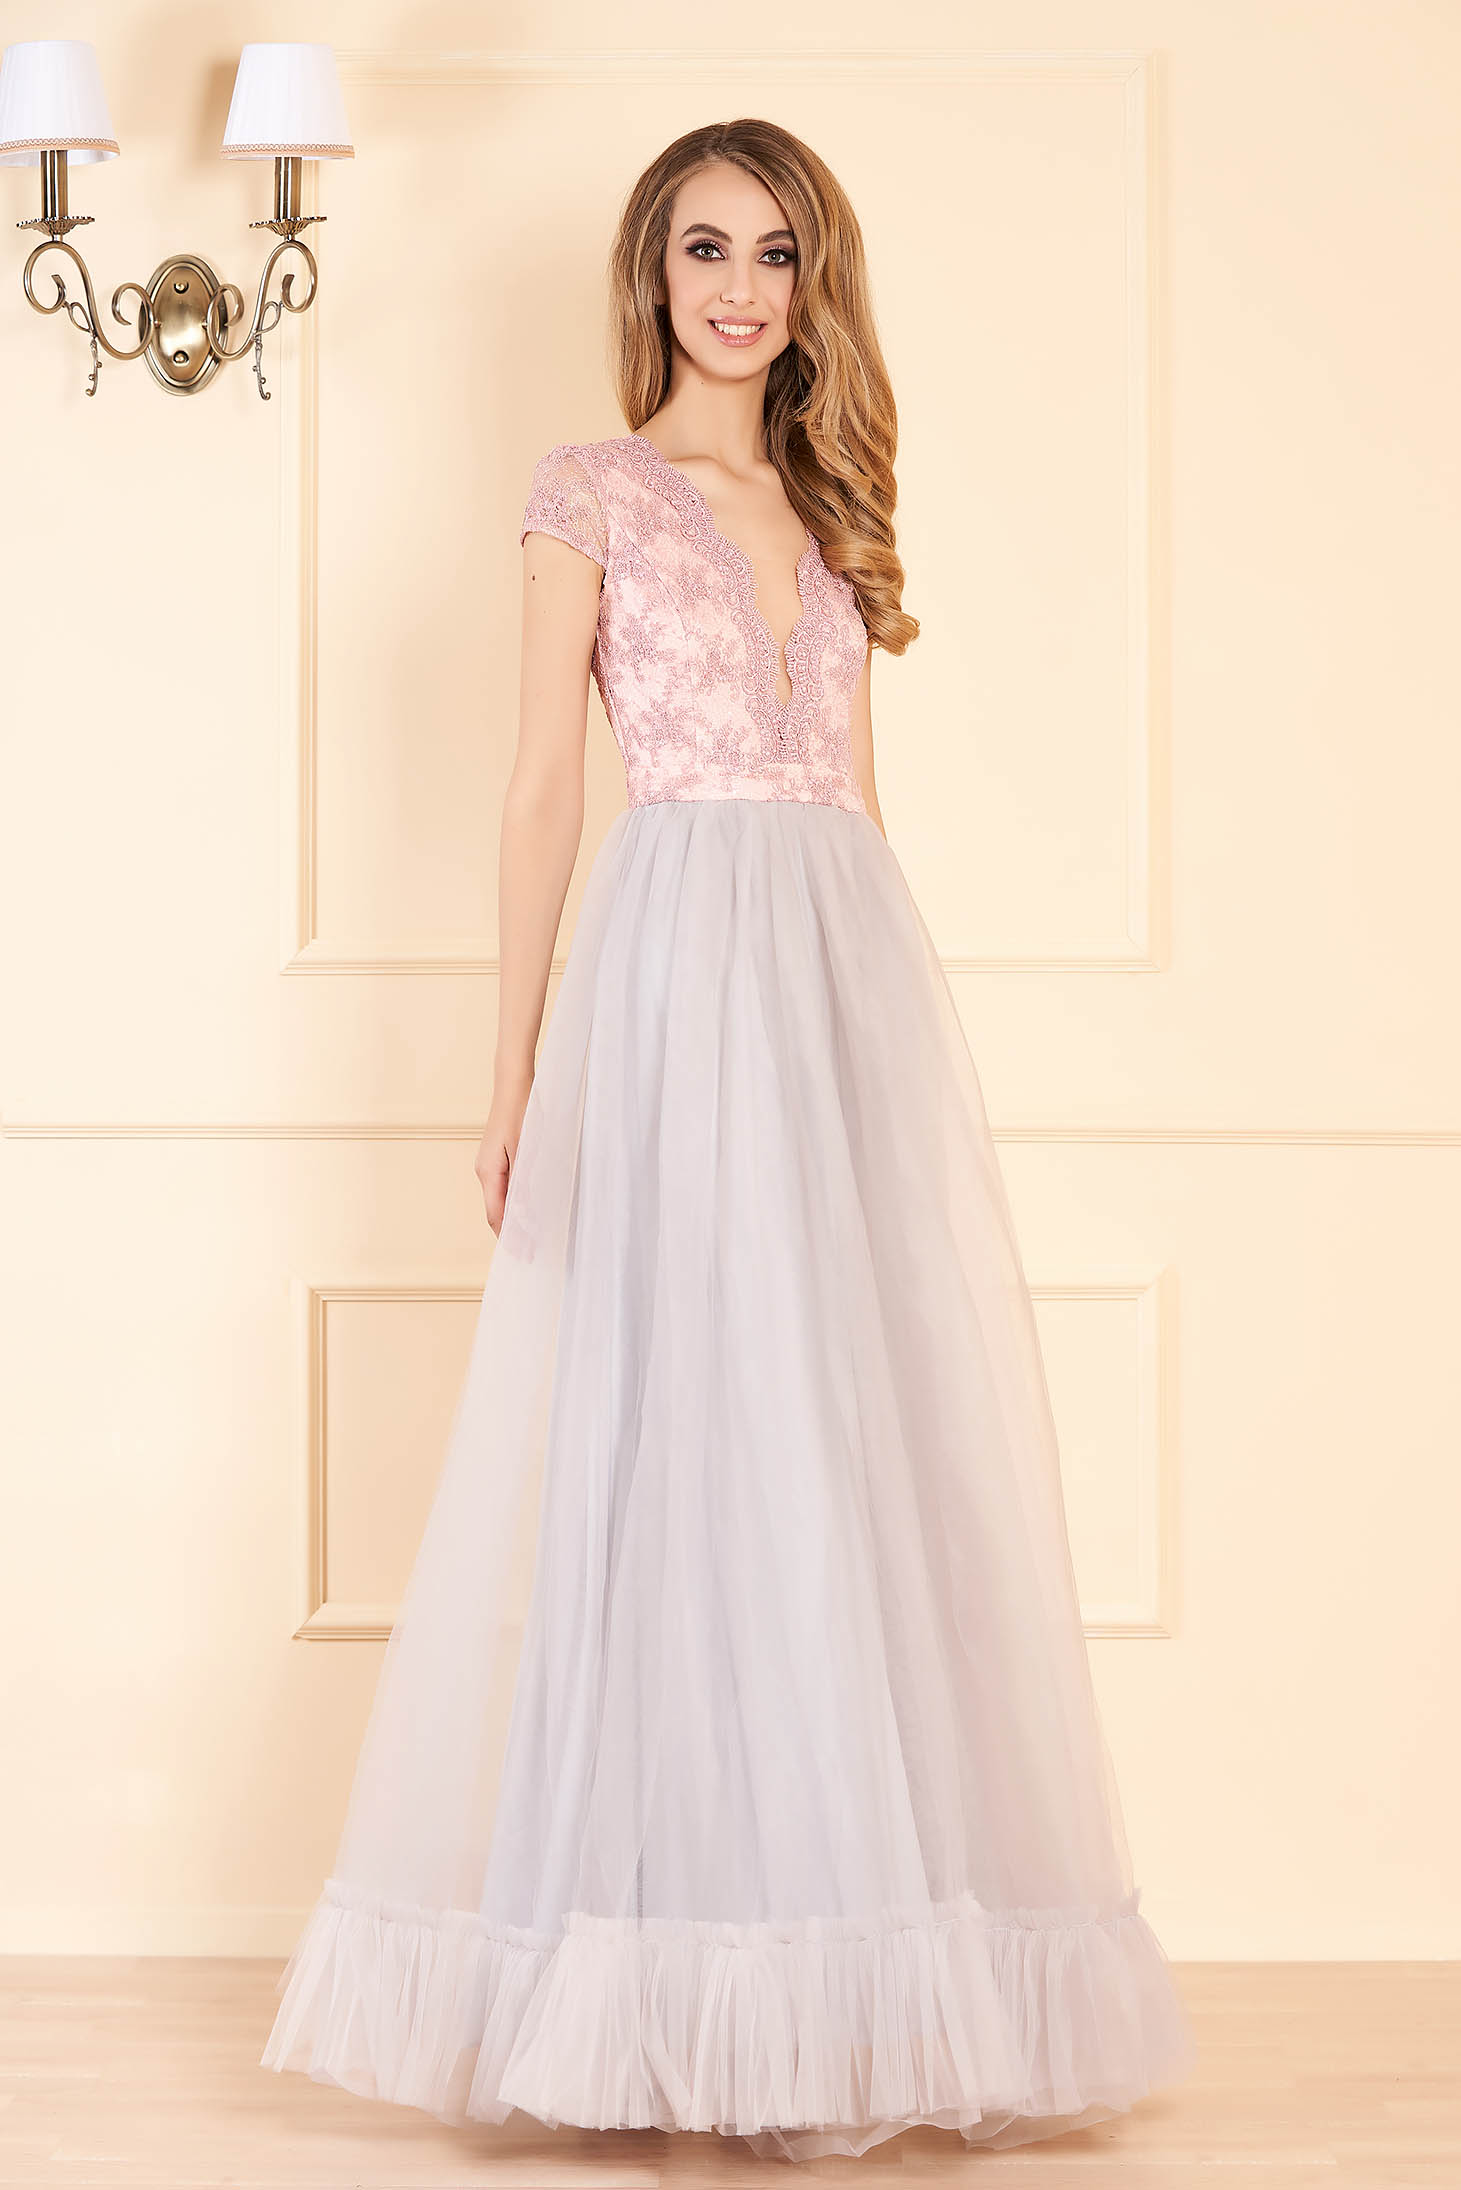 Fofy grey occasional cloche dress lace and tulle fabric with deep cleavage short sleeves